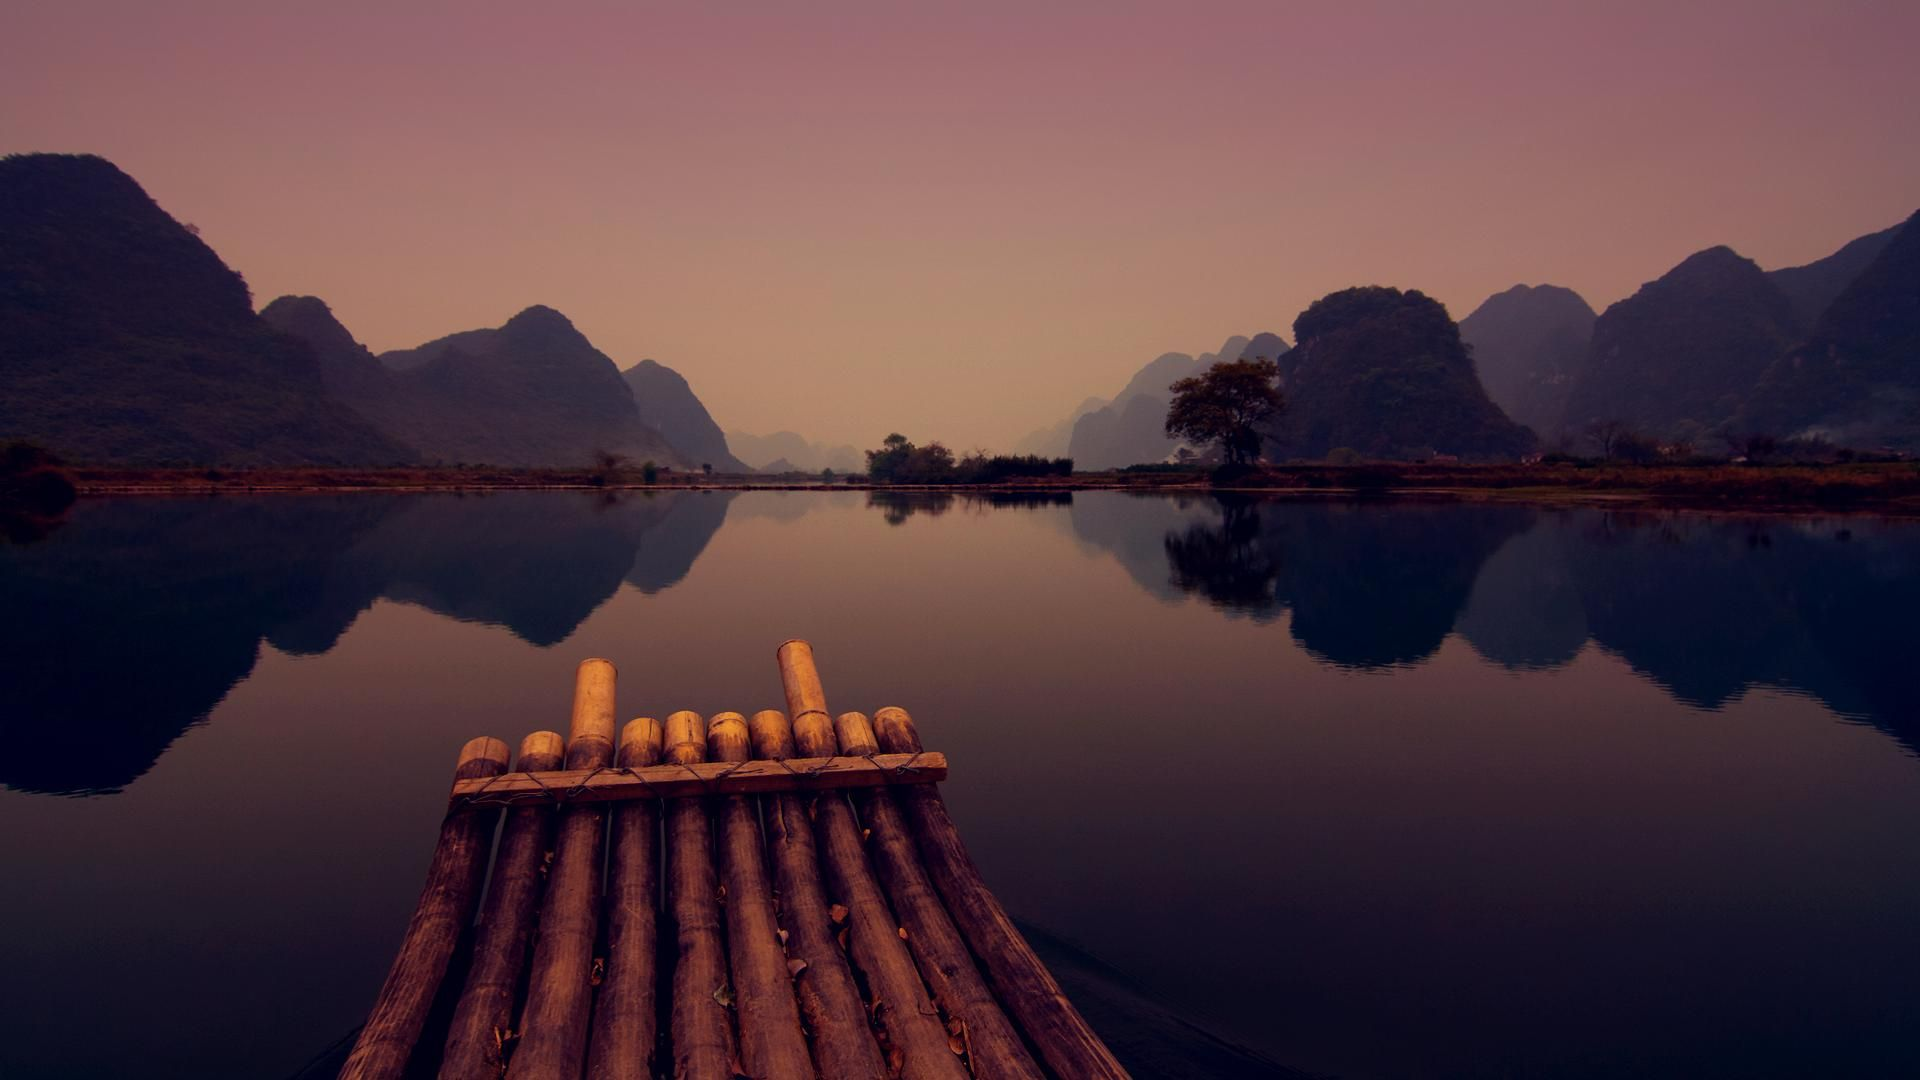 Pin On Tranquillity Tranquility Calmness